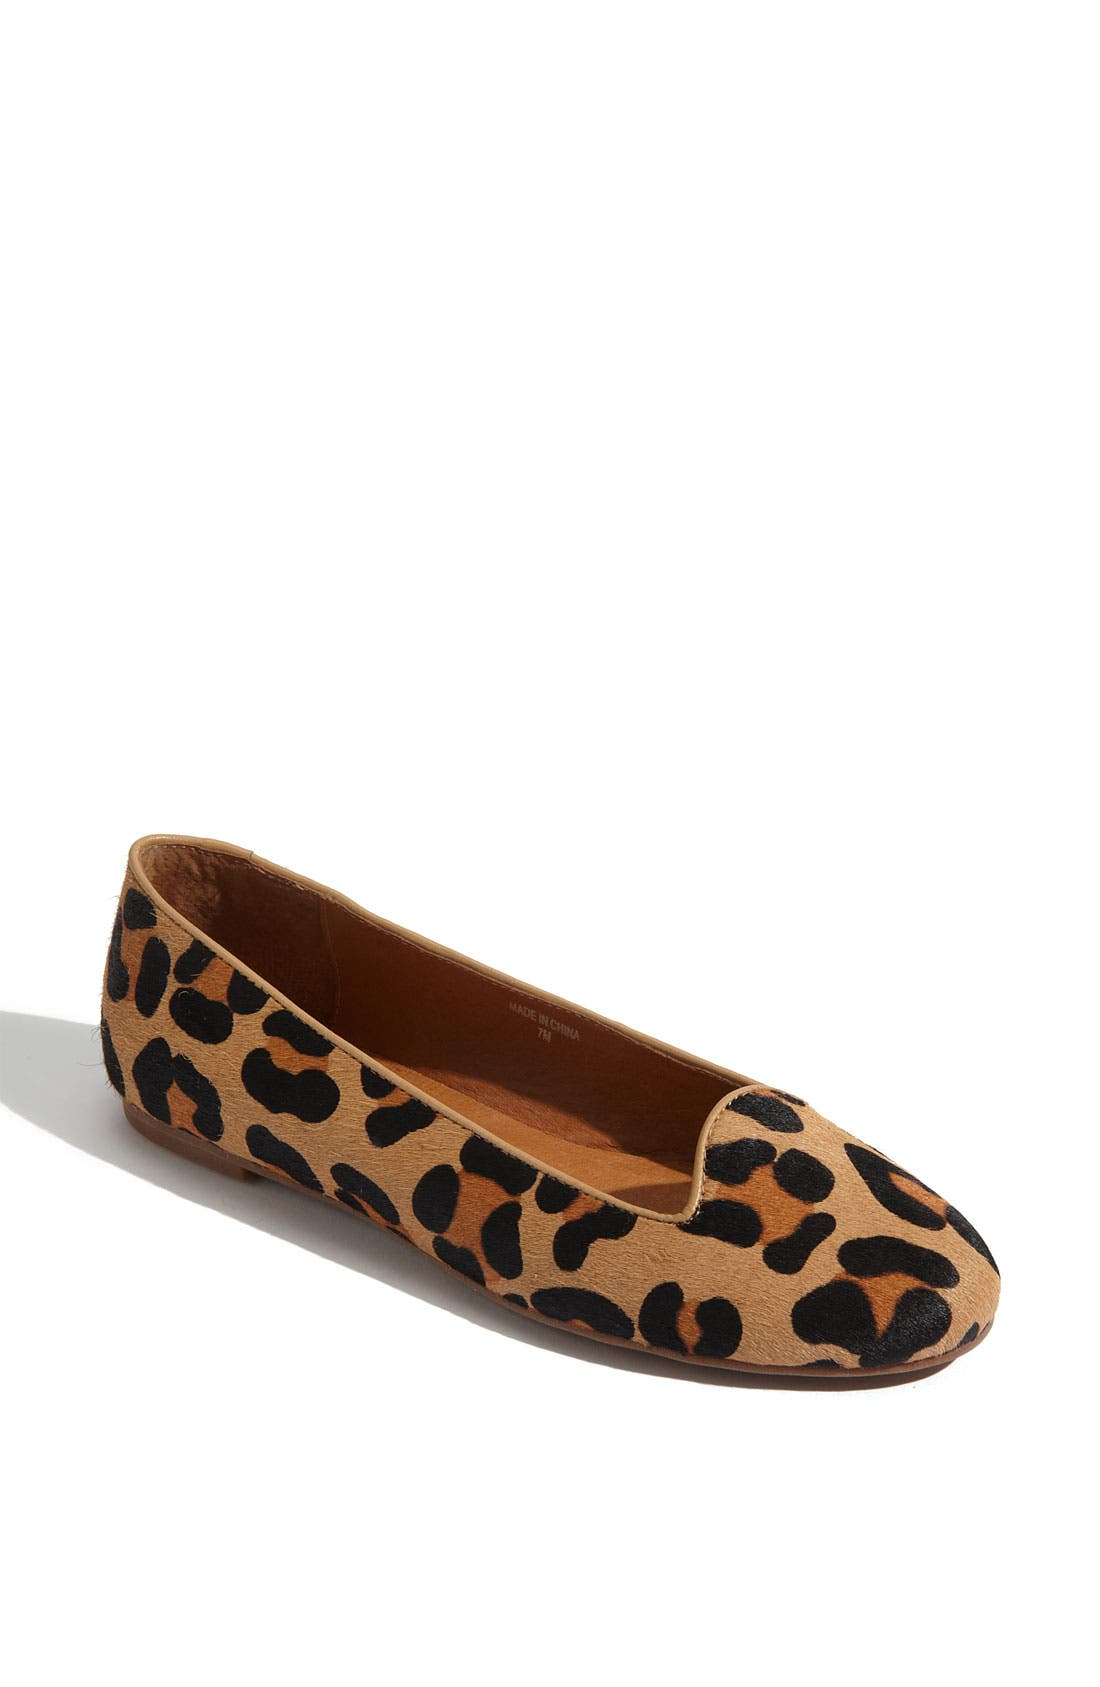 Alternate Image 1 Selected - Jeffrey Campbell 'Mention' Flat